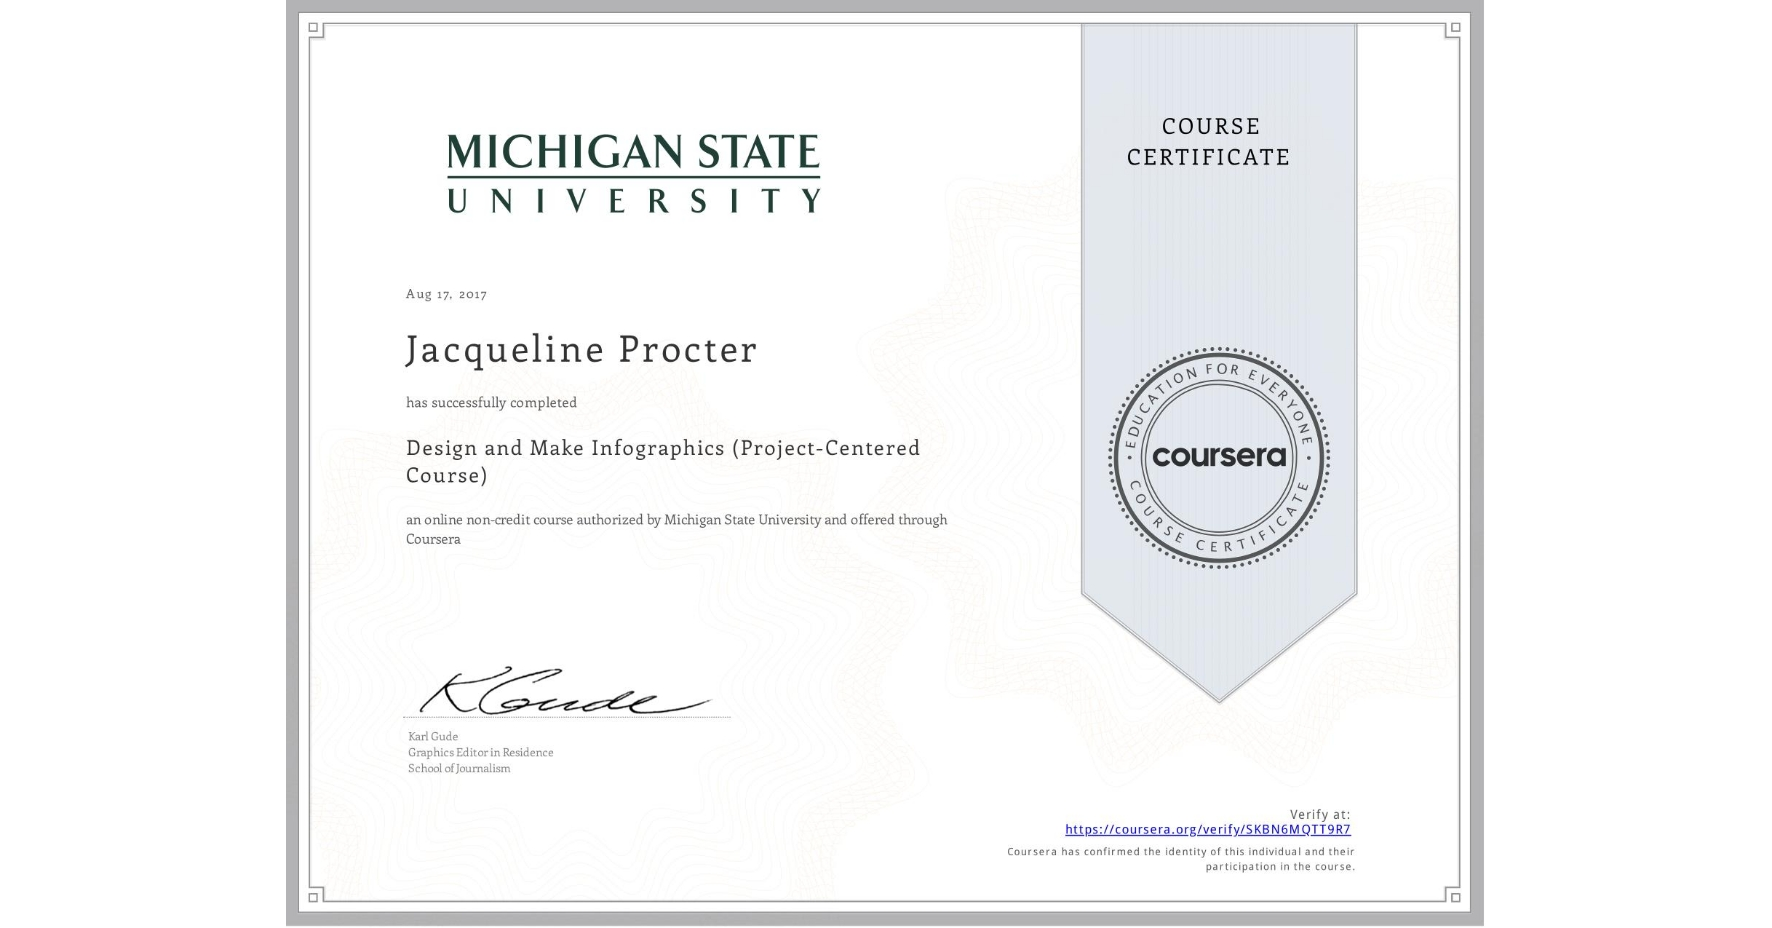 View certificate for Jacqueline Procter, Design and Make Infographics (Project-Centered Course), an online non-credit course authorized by Michigan State University and offered through Coursera